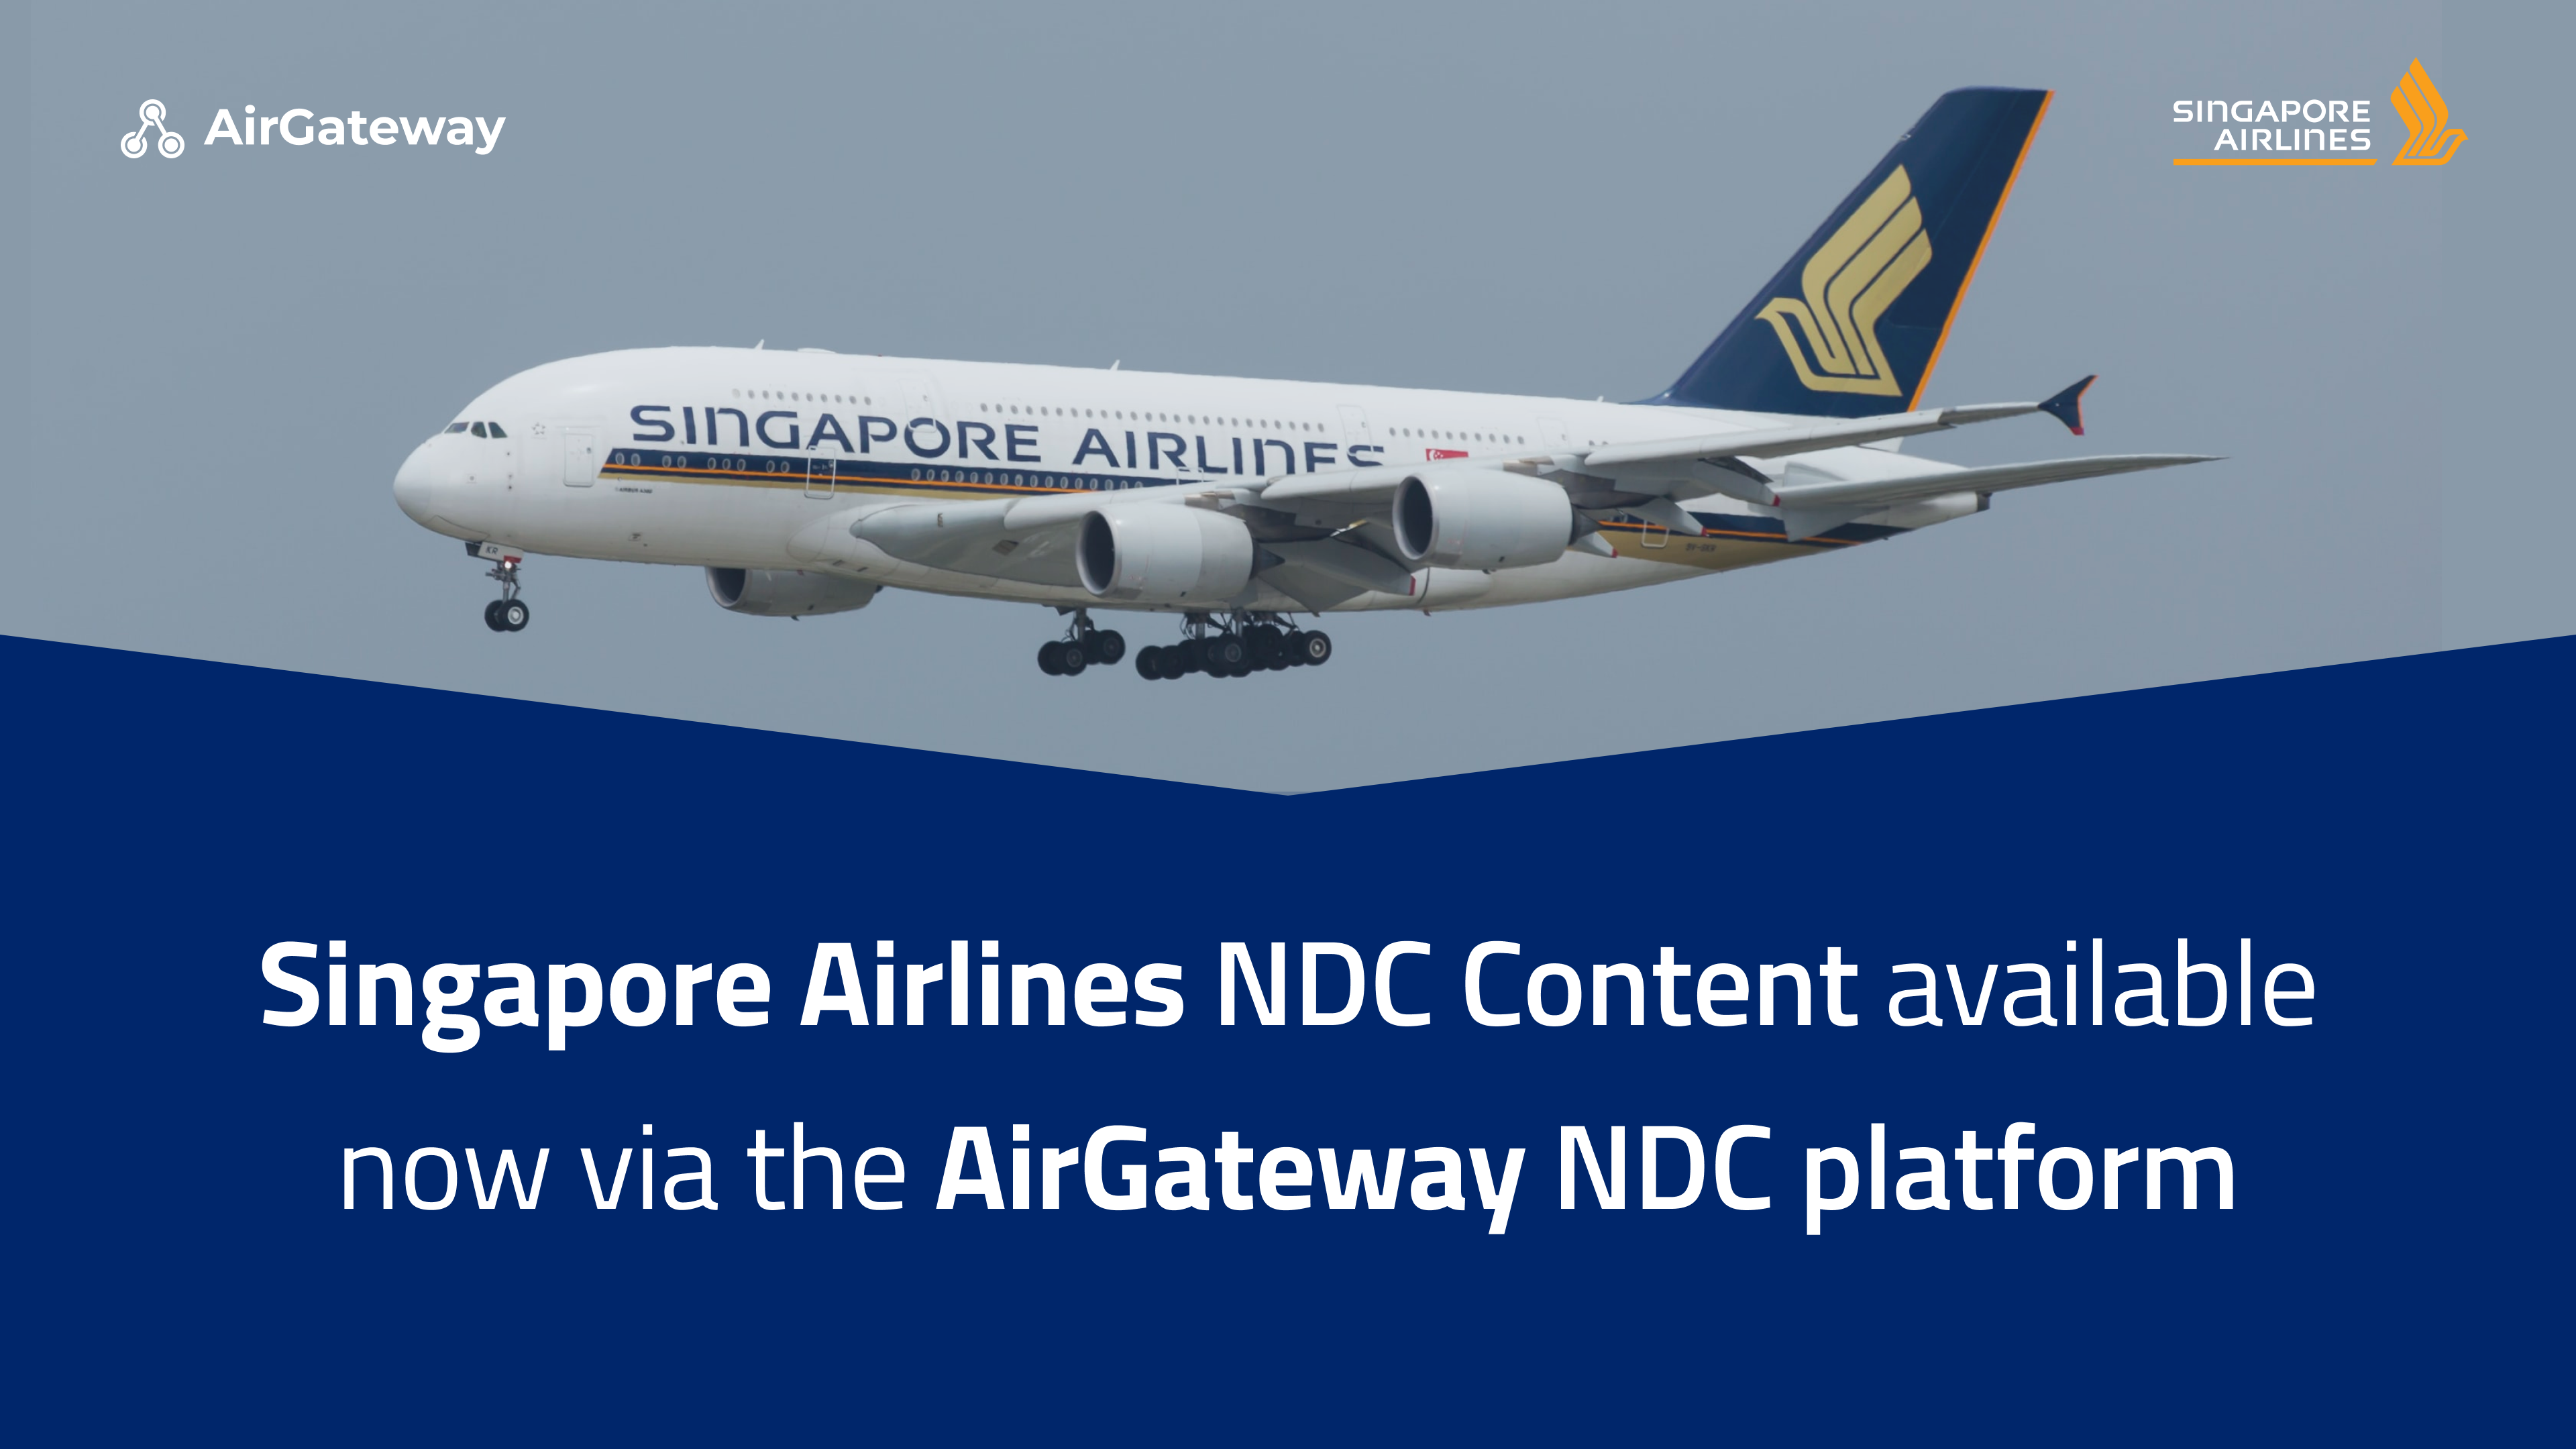 Singapore Airlines NDC added to our platform